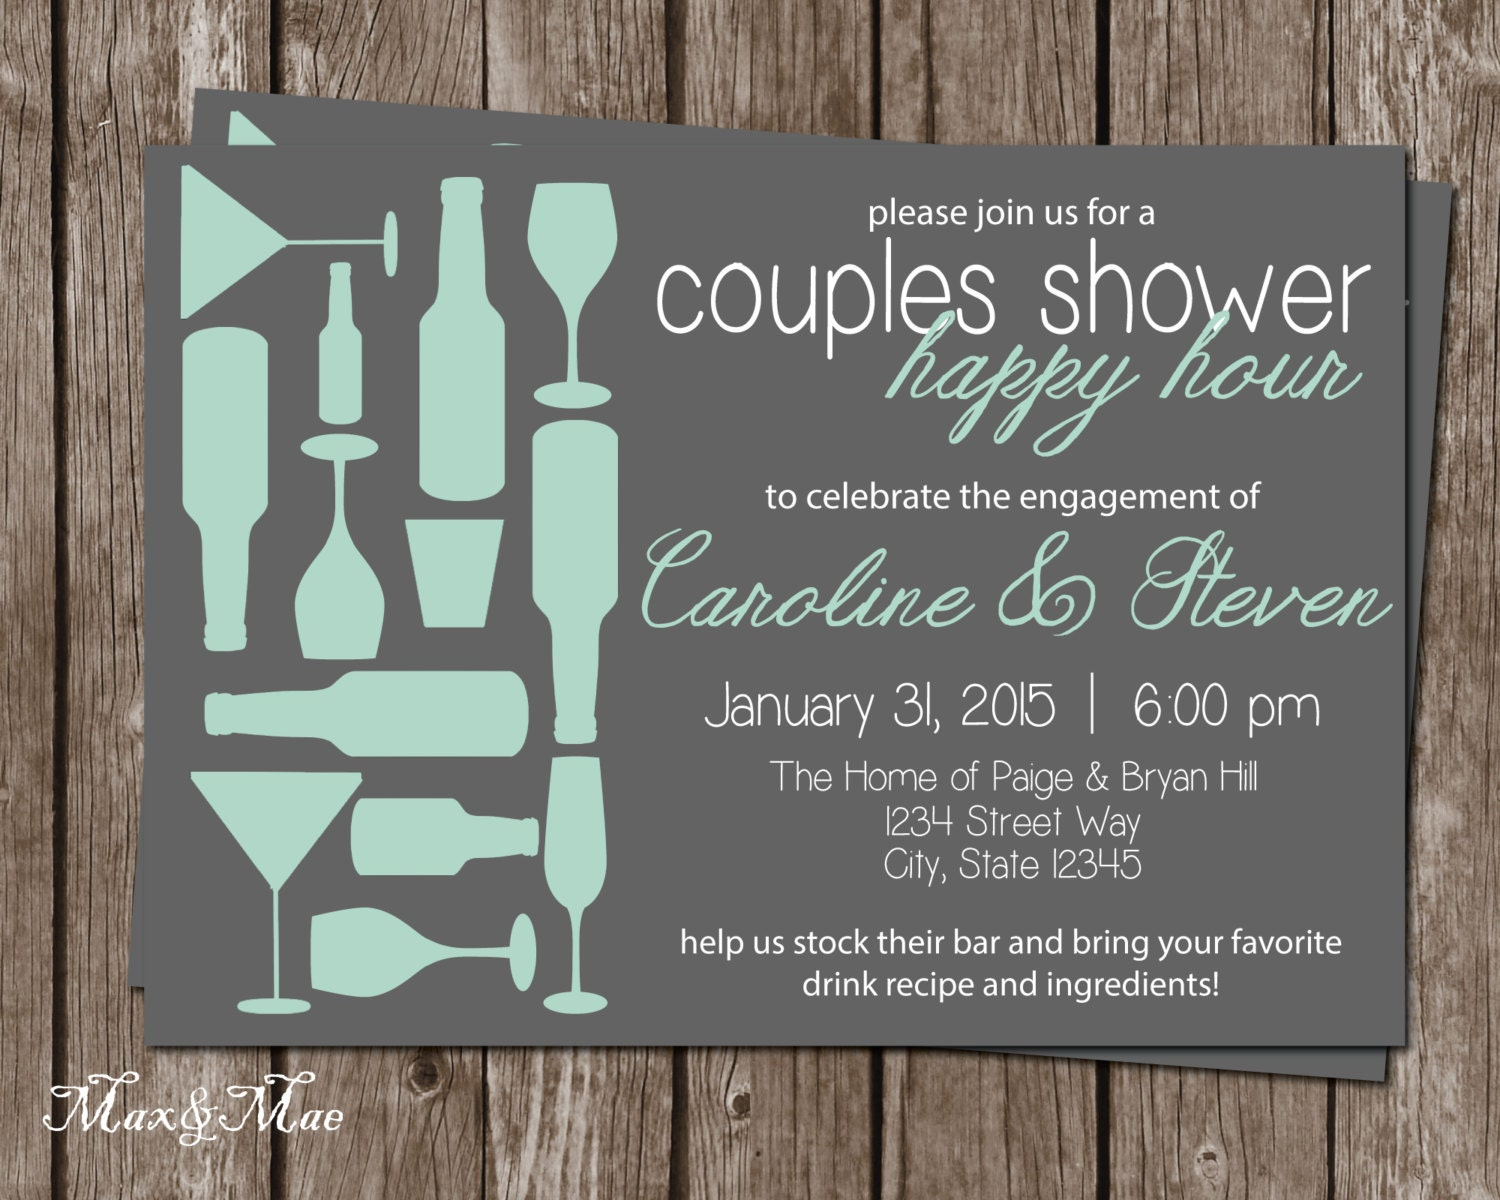 Happy Hour Bridal Invitation Stock the Bar Wedding Shower